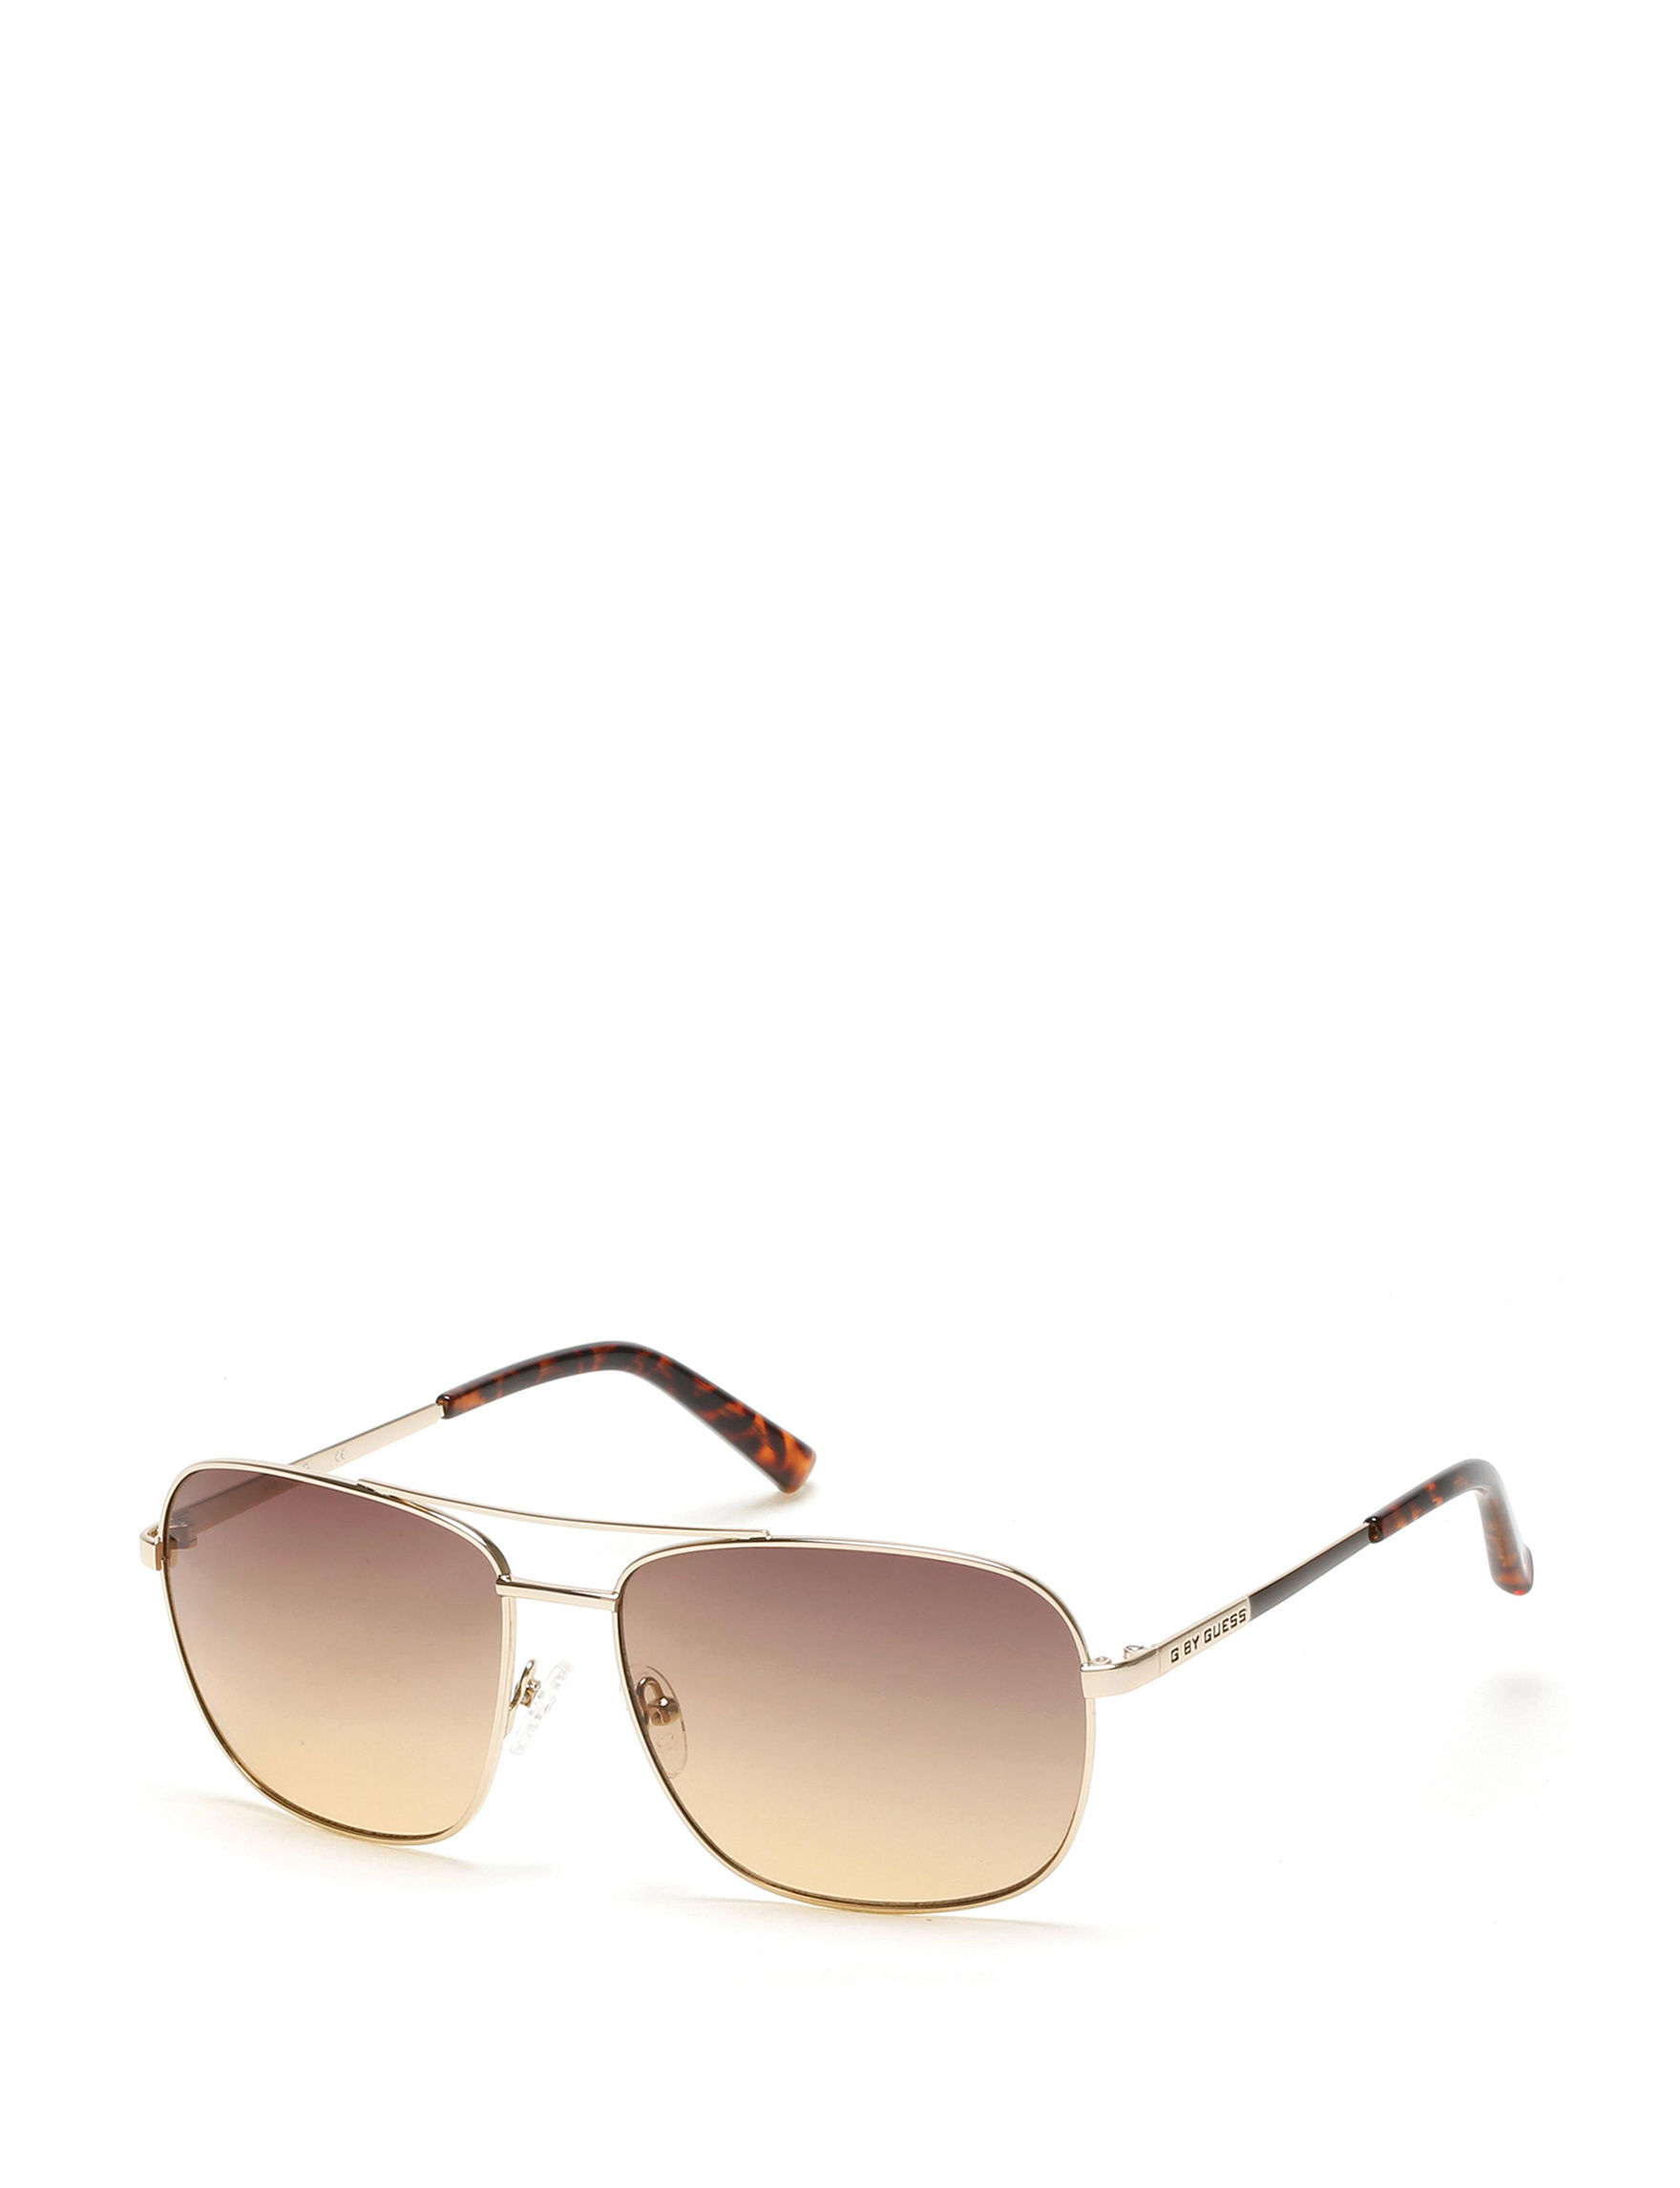 G by Guess Gold